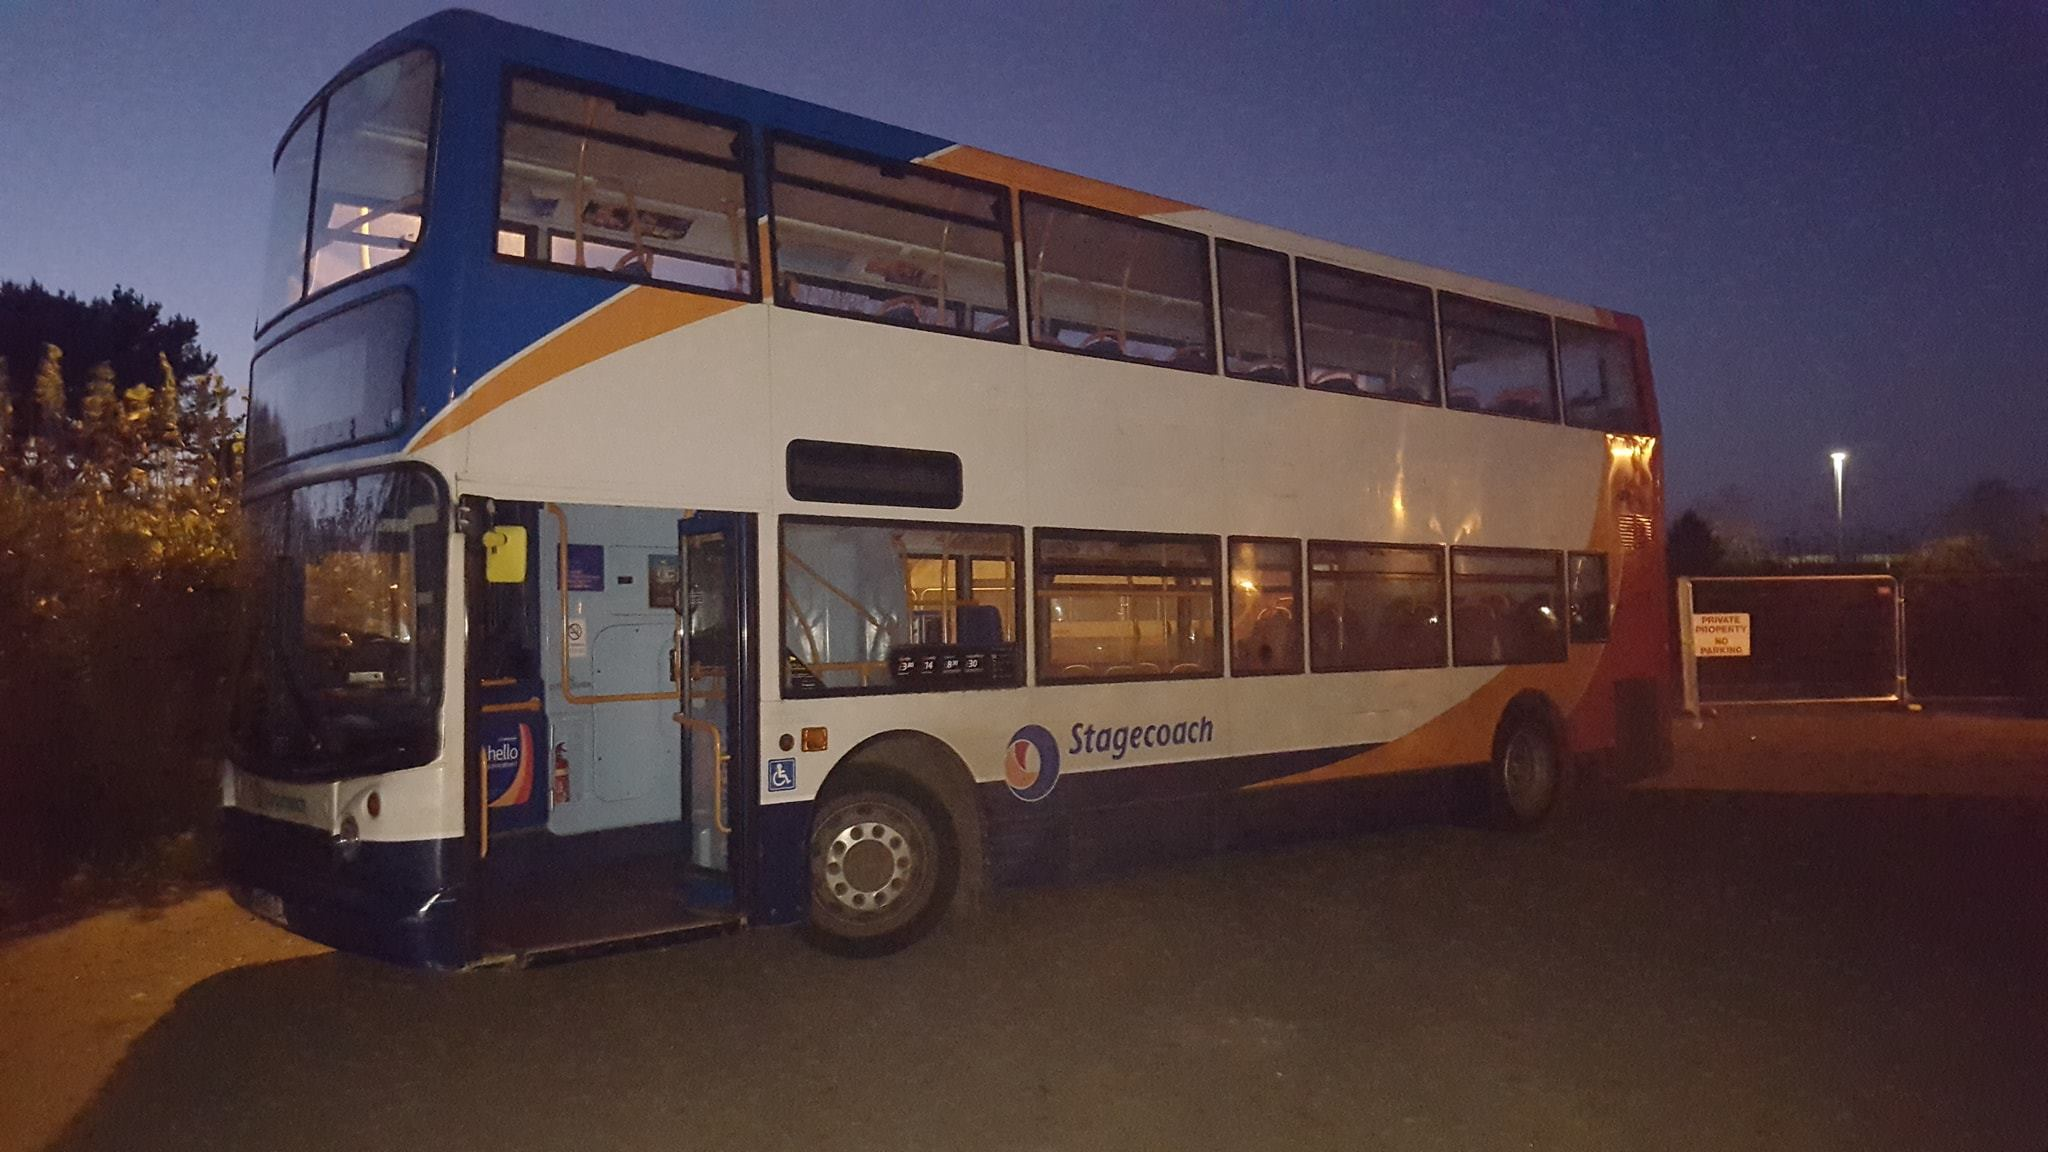 The bus that police stopped after it was stolen